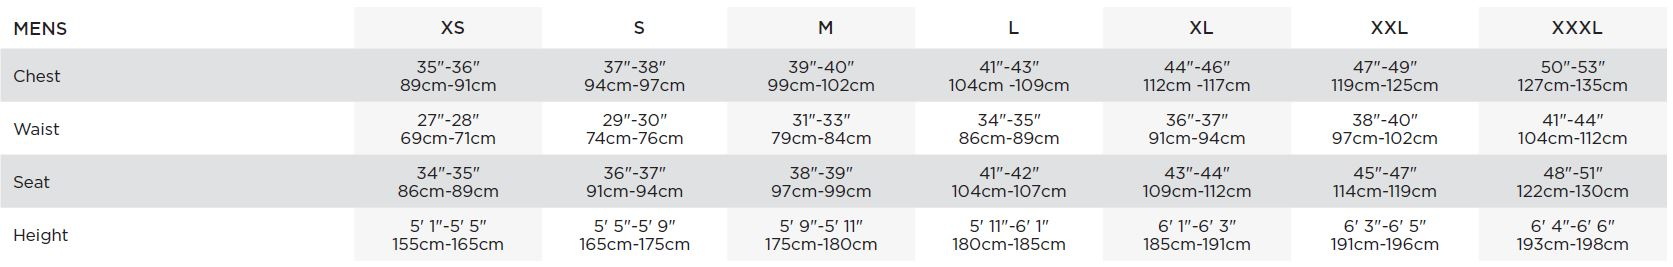 Bauer Men's Apparel Sizing Chart